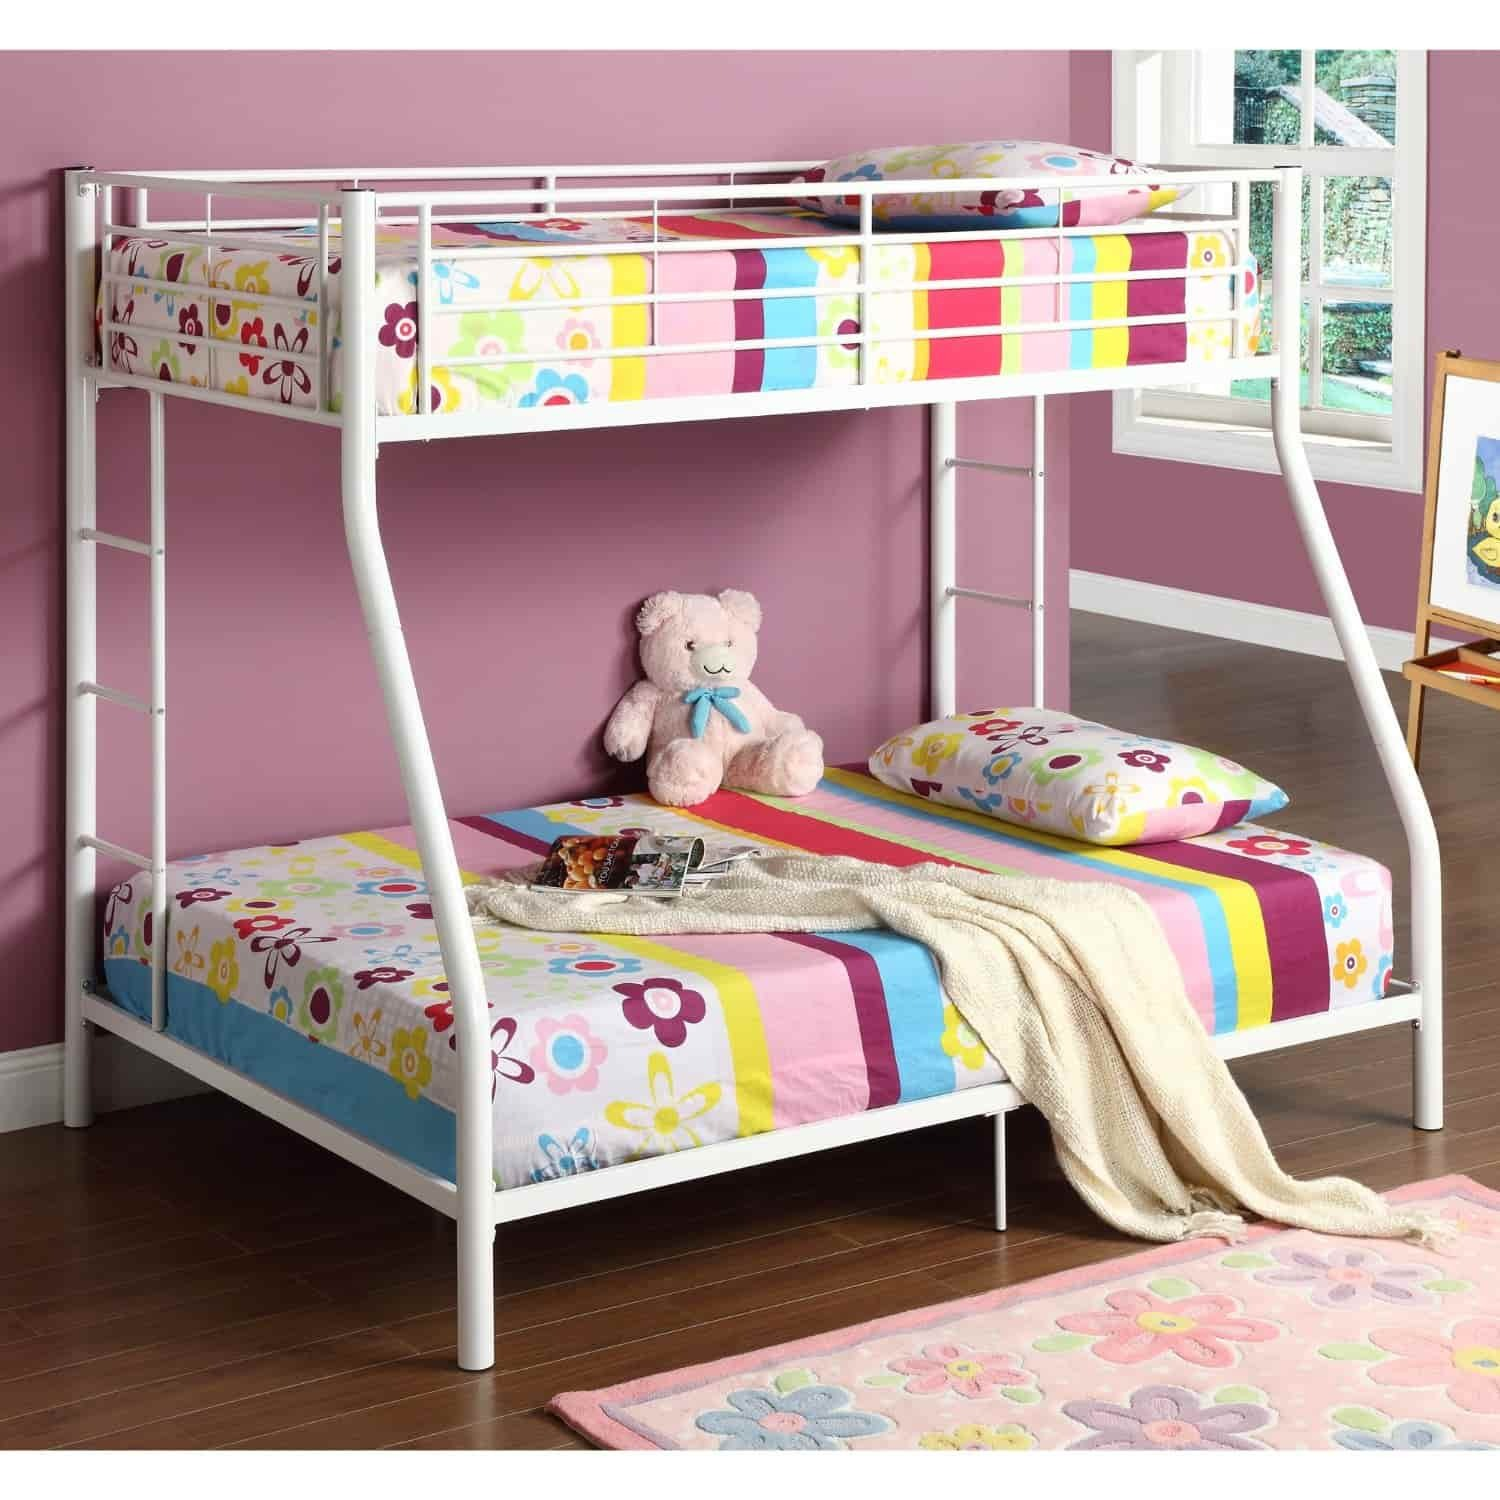 Kids childrens unique twin over full metal bunk bed for Childrens iron beds